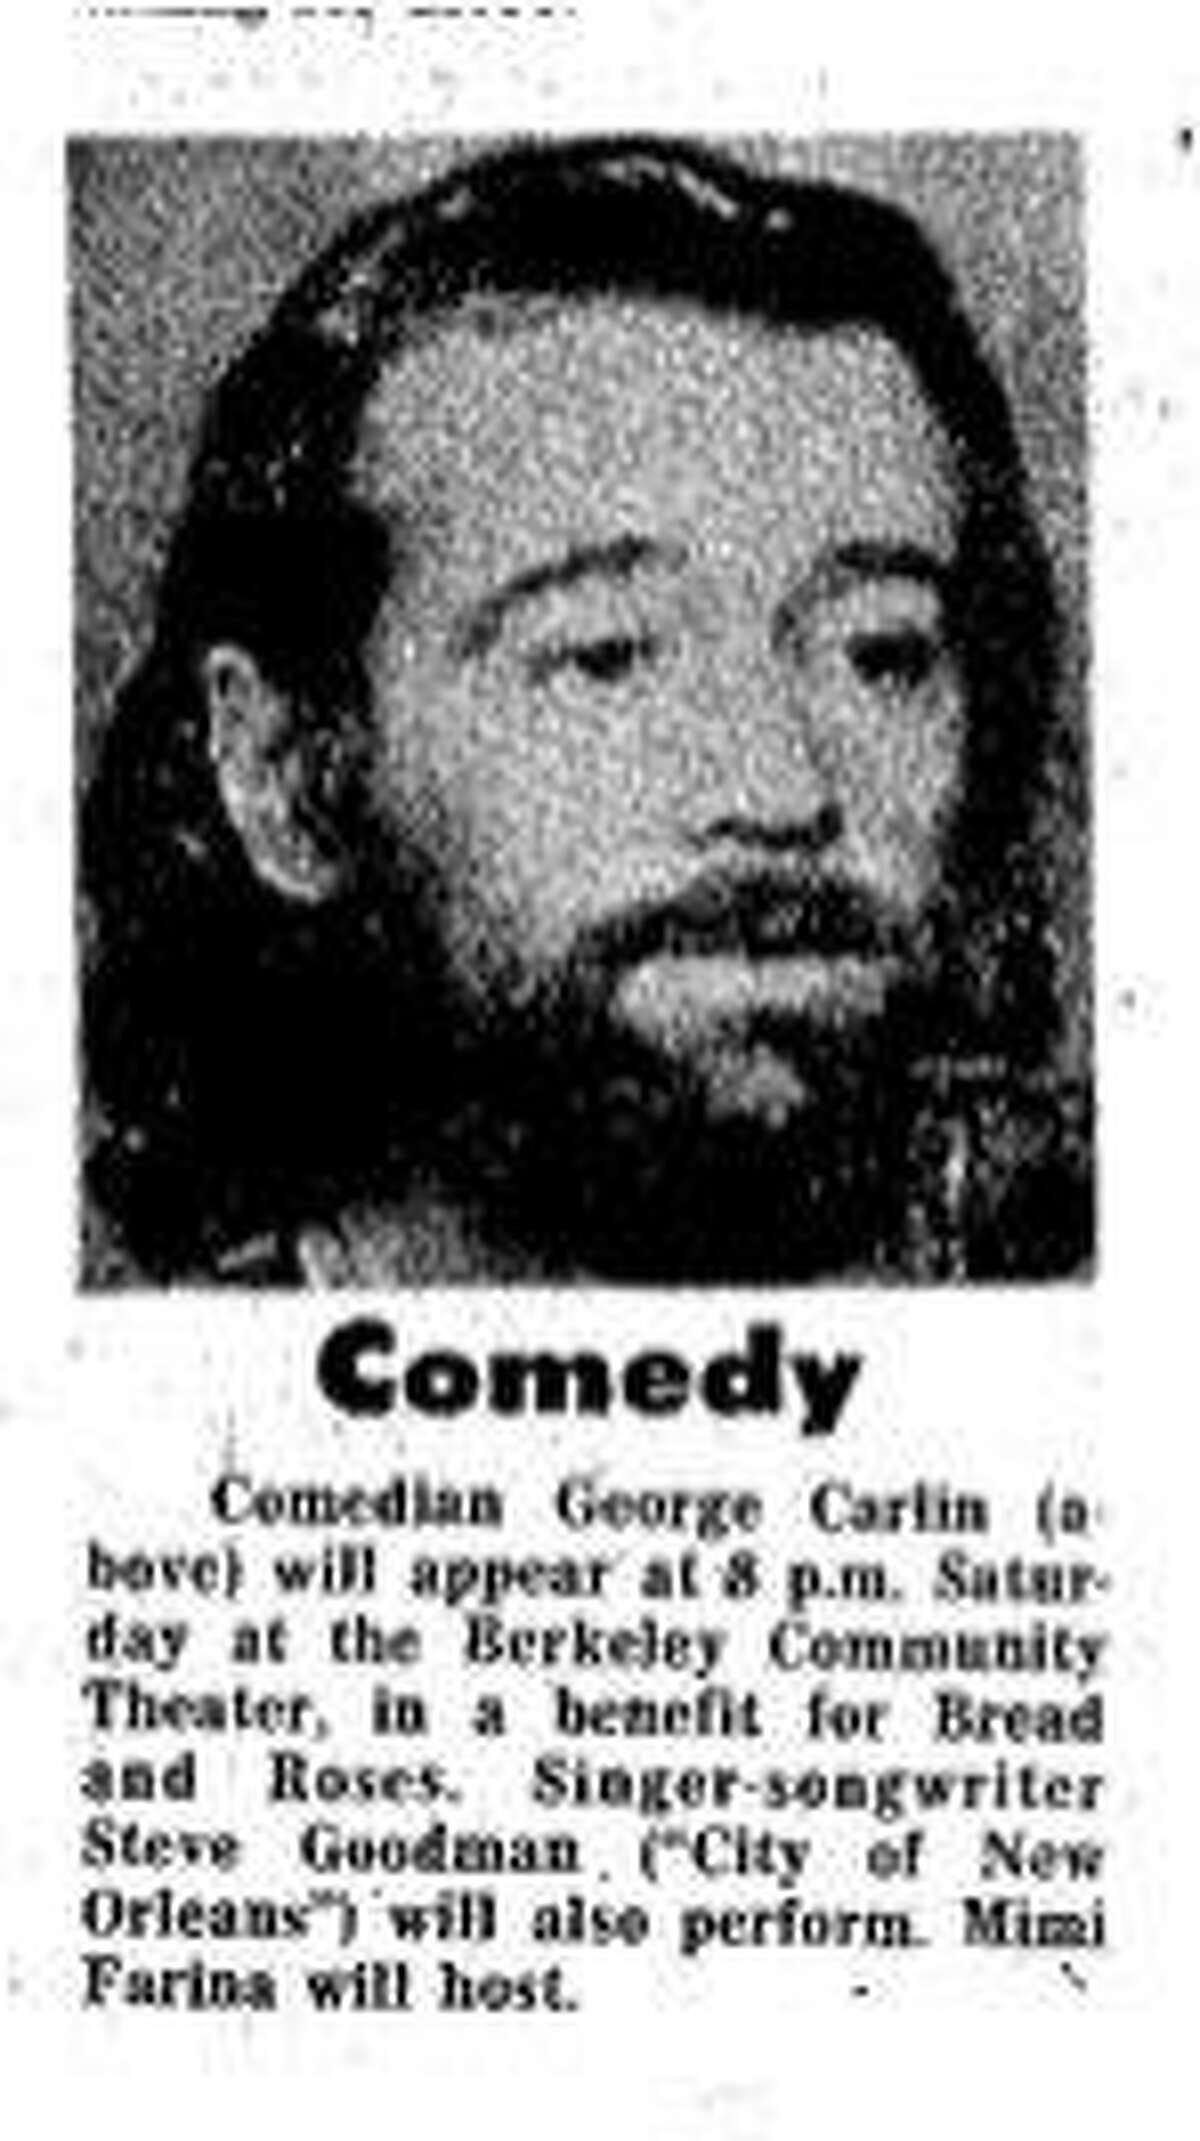 The first benefit show for Bread & Roses included comedian George Carlin in Berkeley